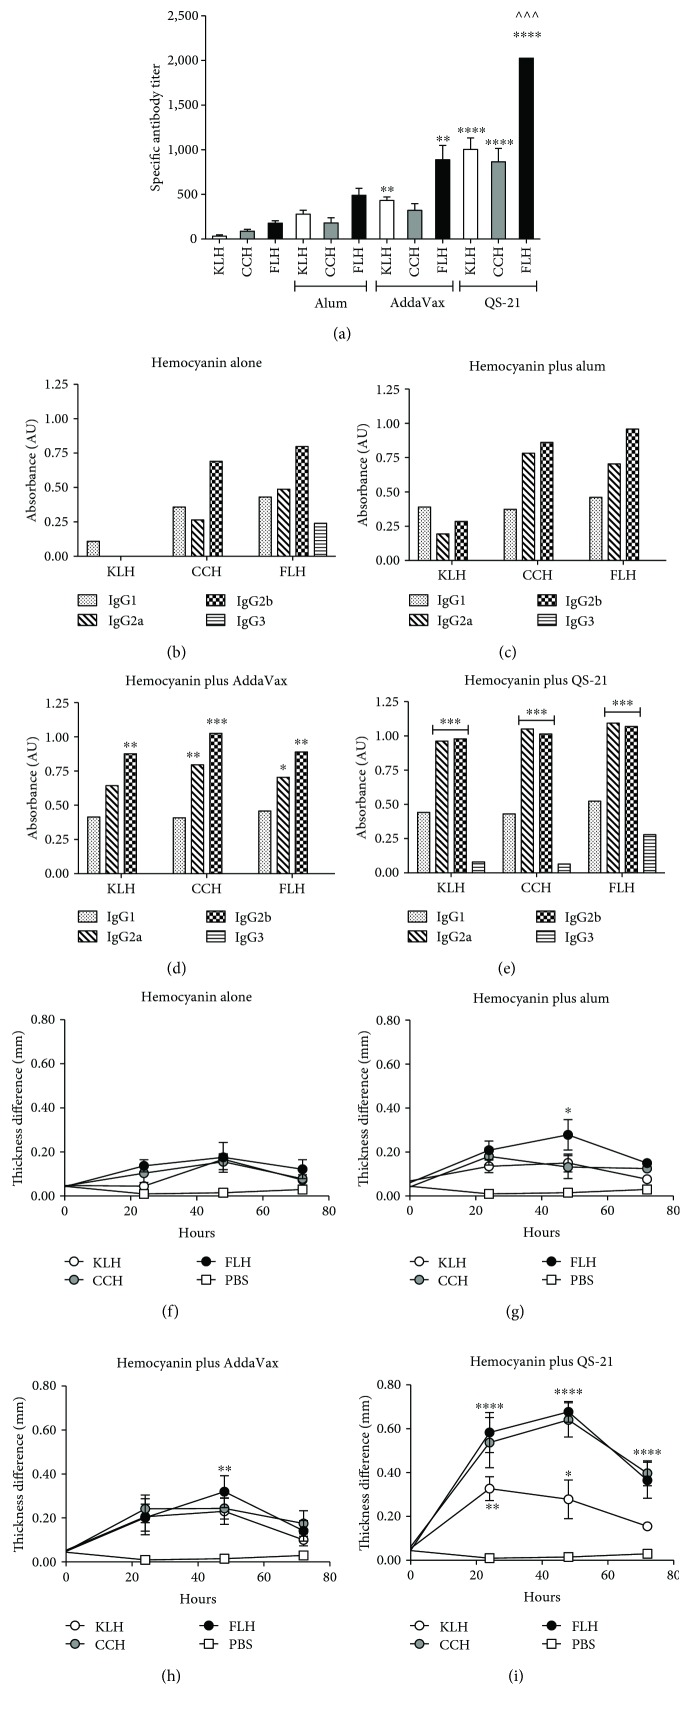 Specific humoral and cellular immune responses in C57BL/6 mice immunized with hemocyanins in combination with adjuvants. Groups of three female C57BL/6 mice were immunized subcutaneously on days 1 and 16 with one of the following treatments: 50 μ g of KLH, CCH, or FLH alone or in combination with 100 μ g of alum or 10 μ g of QS-21 in a 1 : 1 (vol/vol) ratio with AddaVax, all in a total volume of 100 μ l of PBS (vehicle). A serum sample was taken from each animal on day 37 after the second immunization for analysis by indirect ELISA. (a) Total anti-hemocyanin IgG titers in mouse sera. Values are presented as means ± SEM. The anti-hemocyanin IgG titers for each hemocyanin alone were compared by one-way ANOVA with the same hemocyanin in combination with an adjuvant. ∗∗∗∗ P